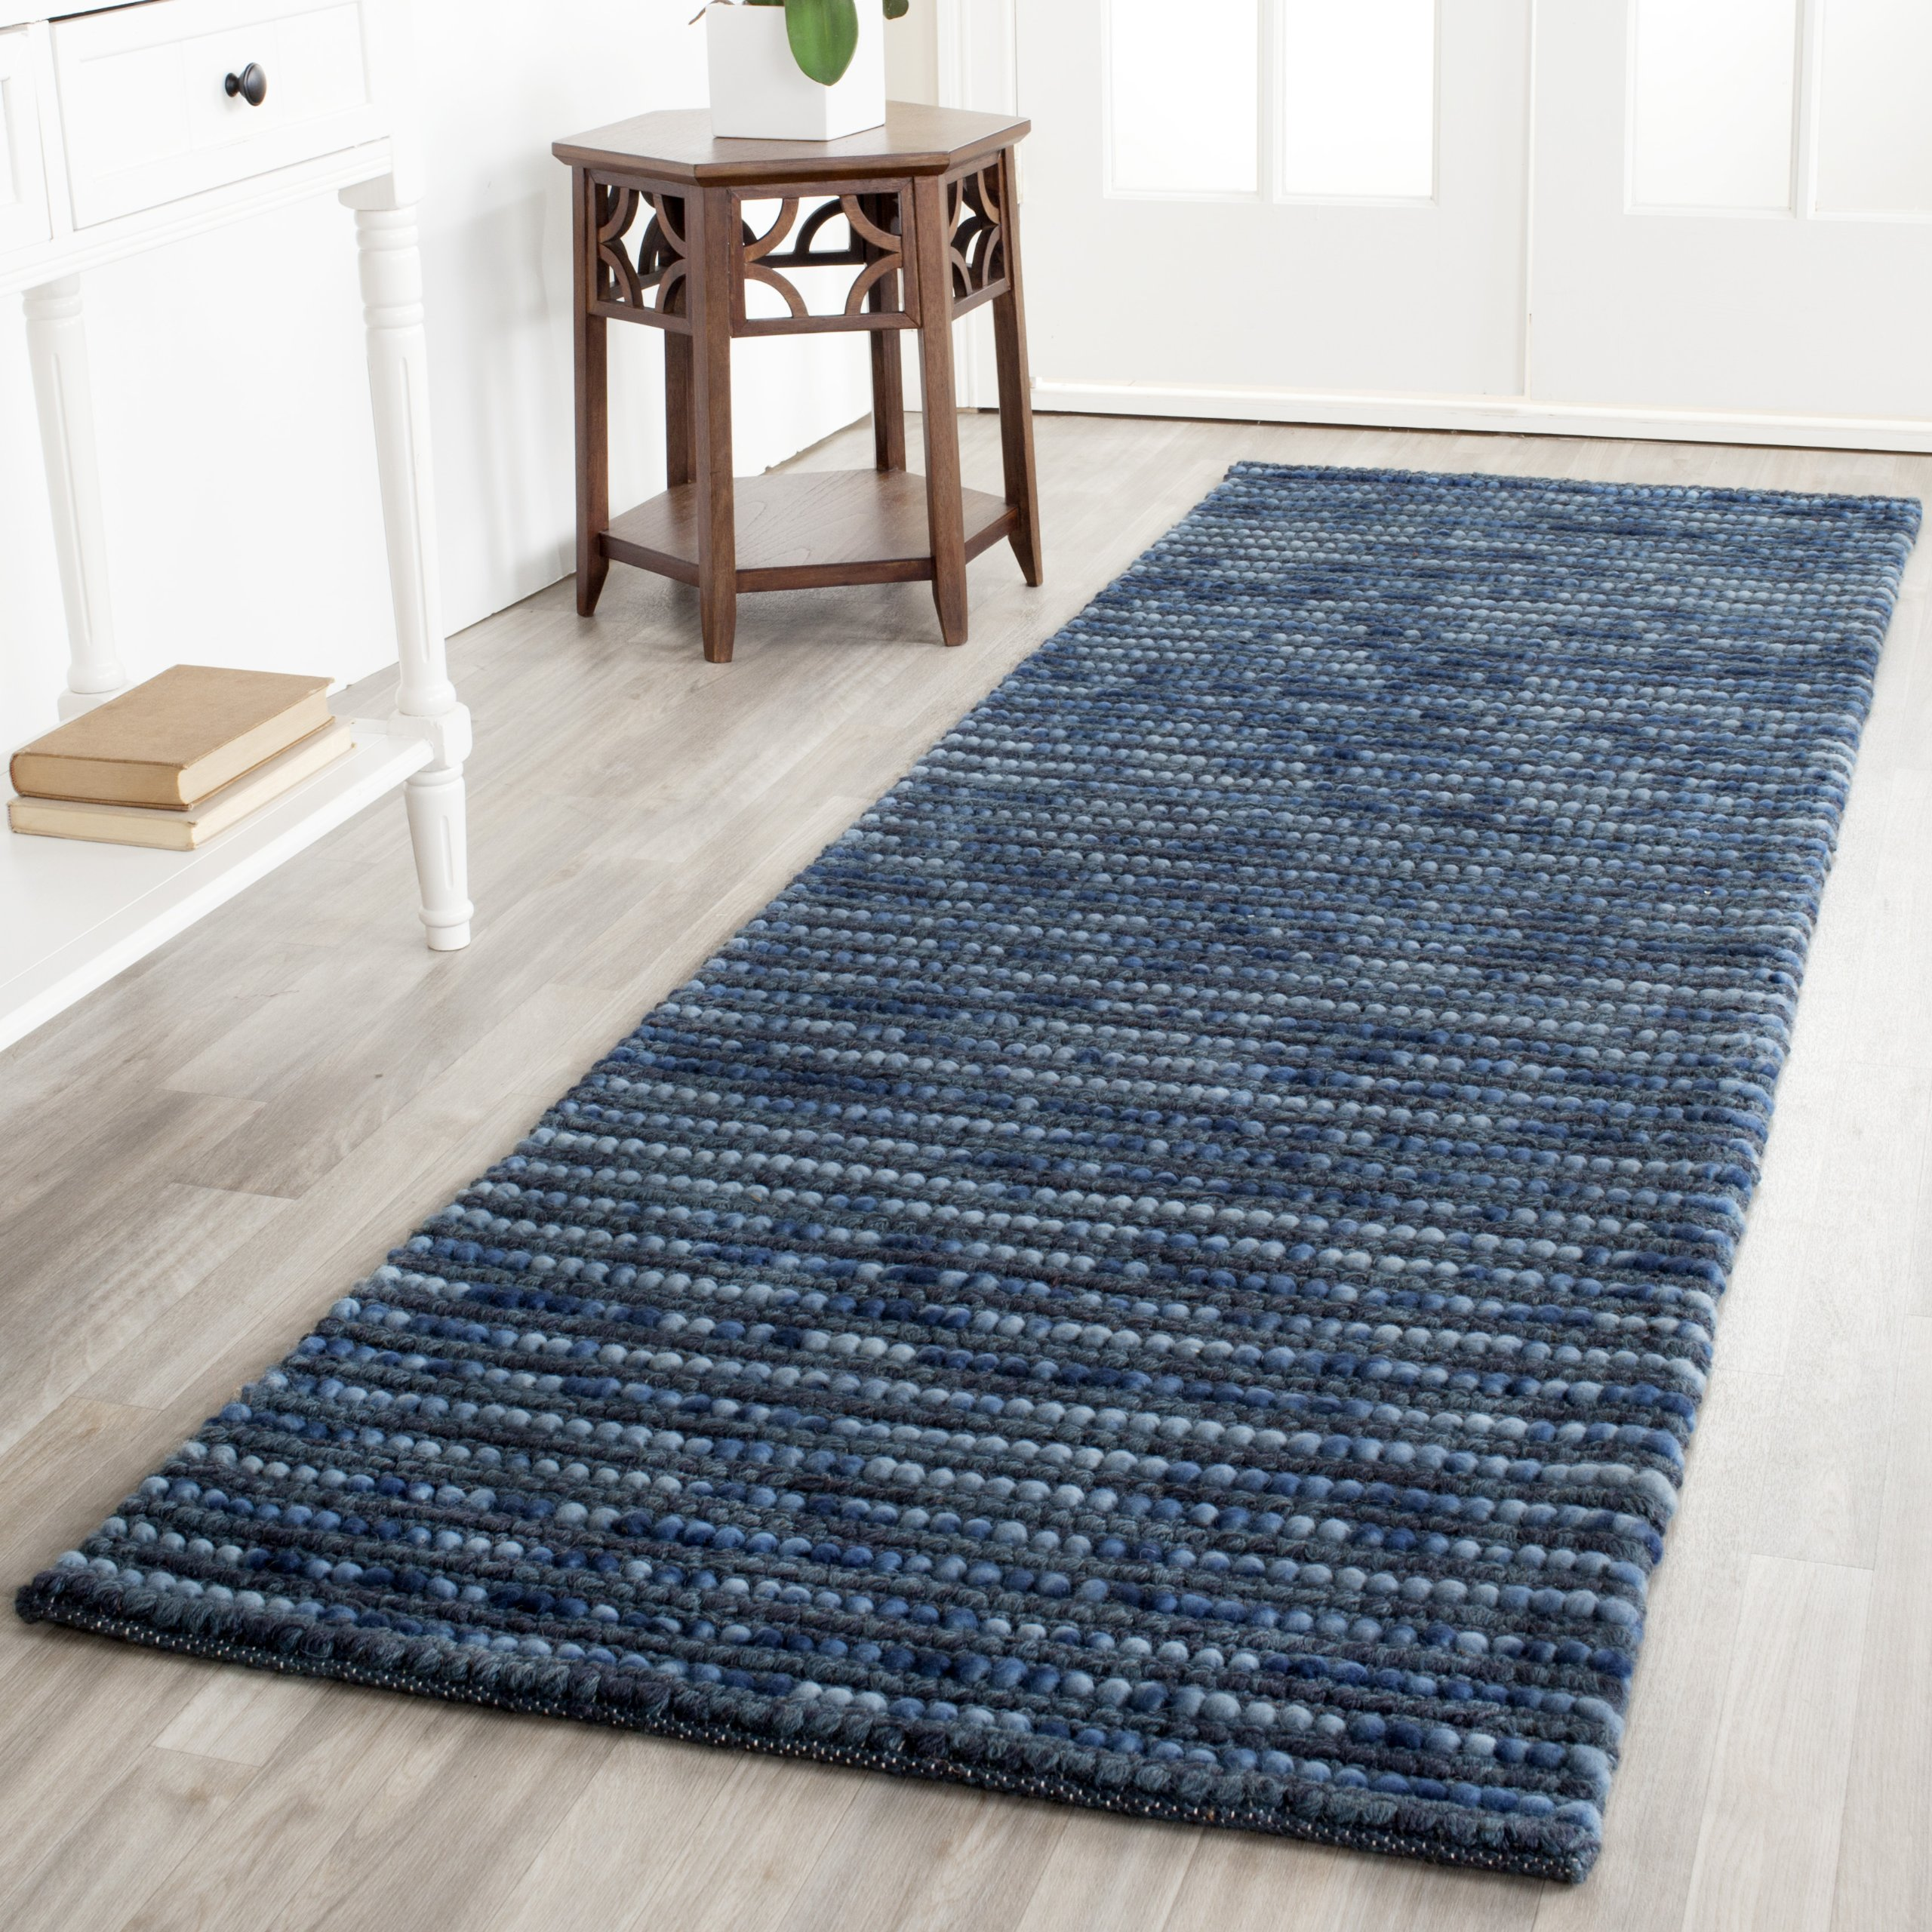 Safavieh Bohemian Collection BOH525G Hand-Knotted Dark Blue and Multi Jute Runner (2'6'' x 14') by Safavieh